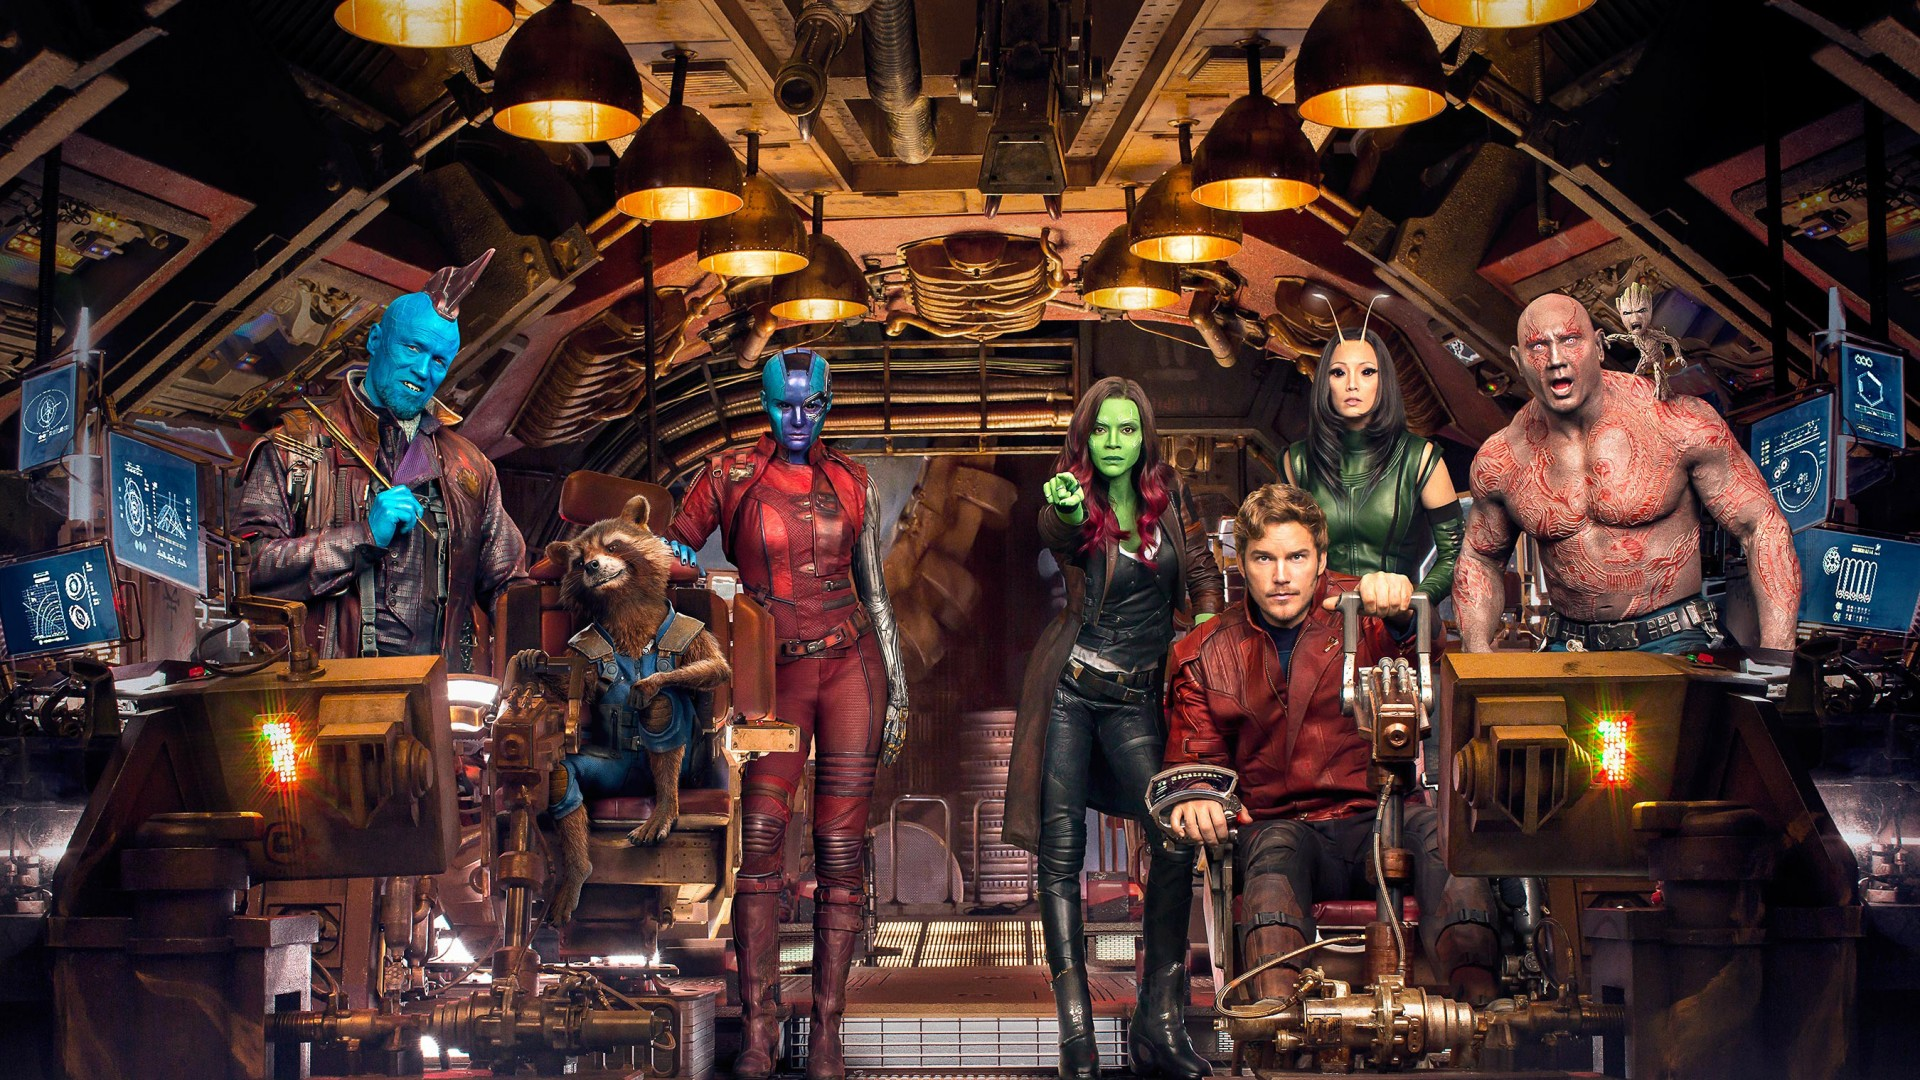 Guardians Of The Galaxy Images Vol 2 Cast HD Wallpaper And Background Photos